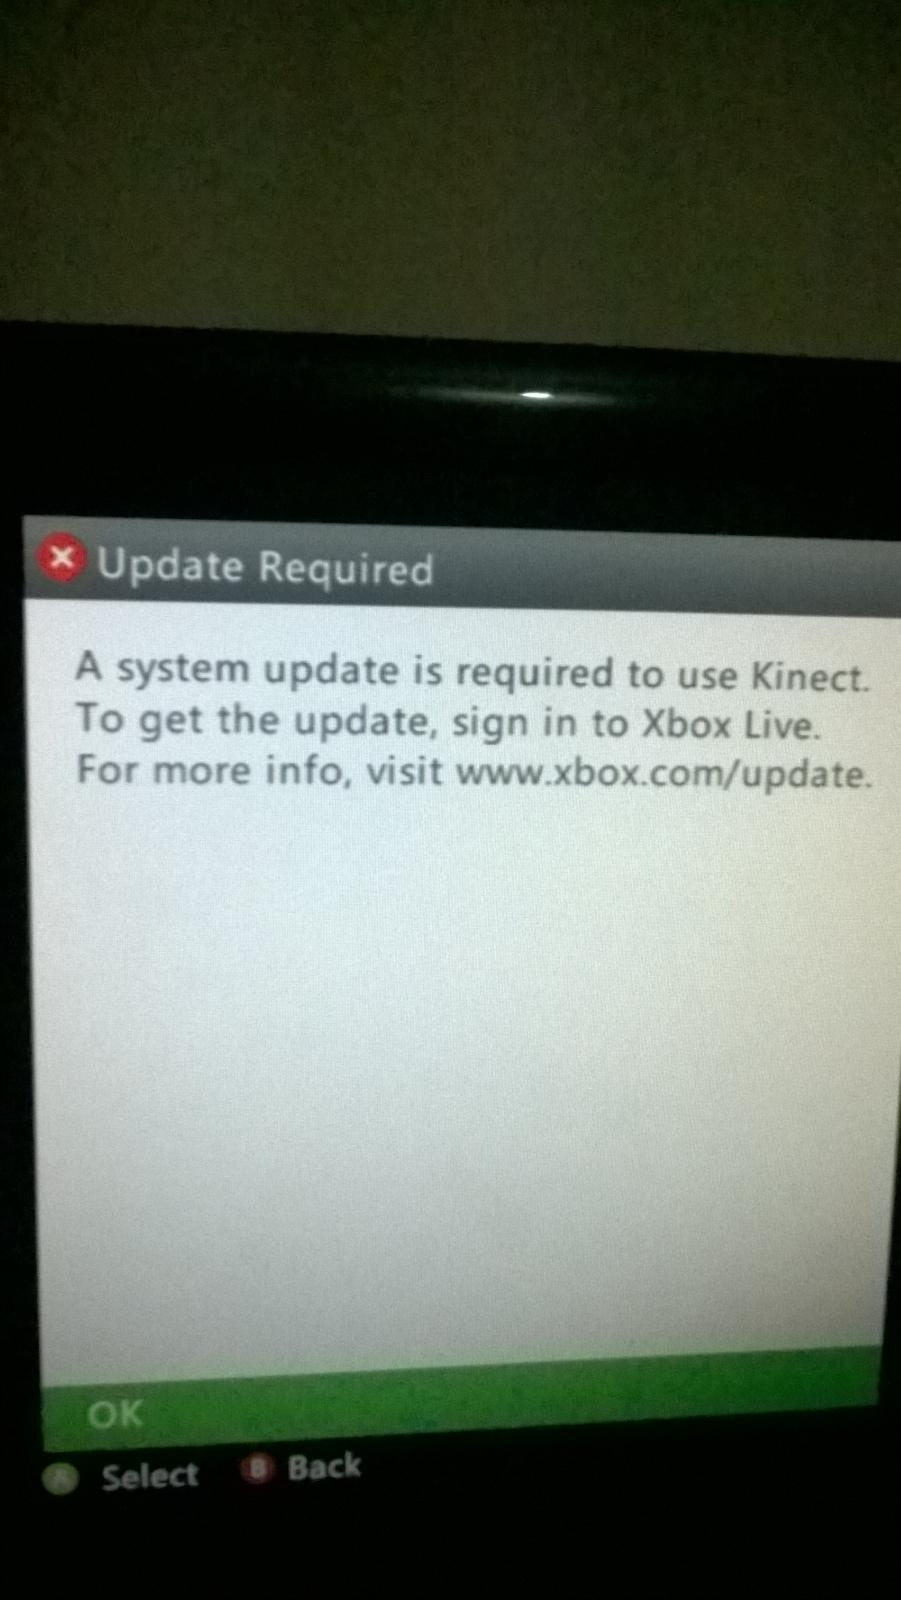 A system update is required to use kinect